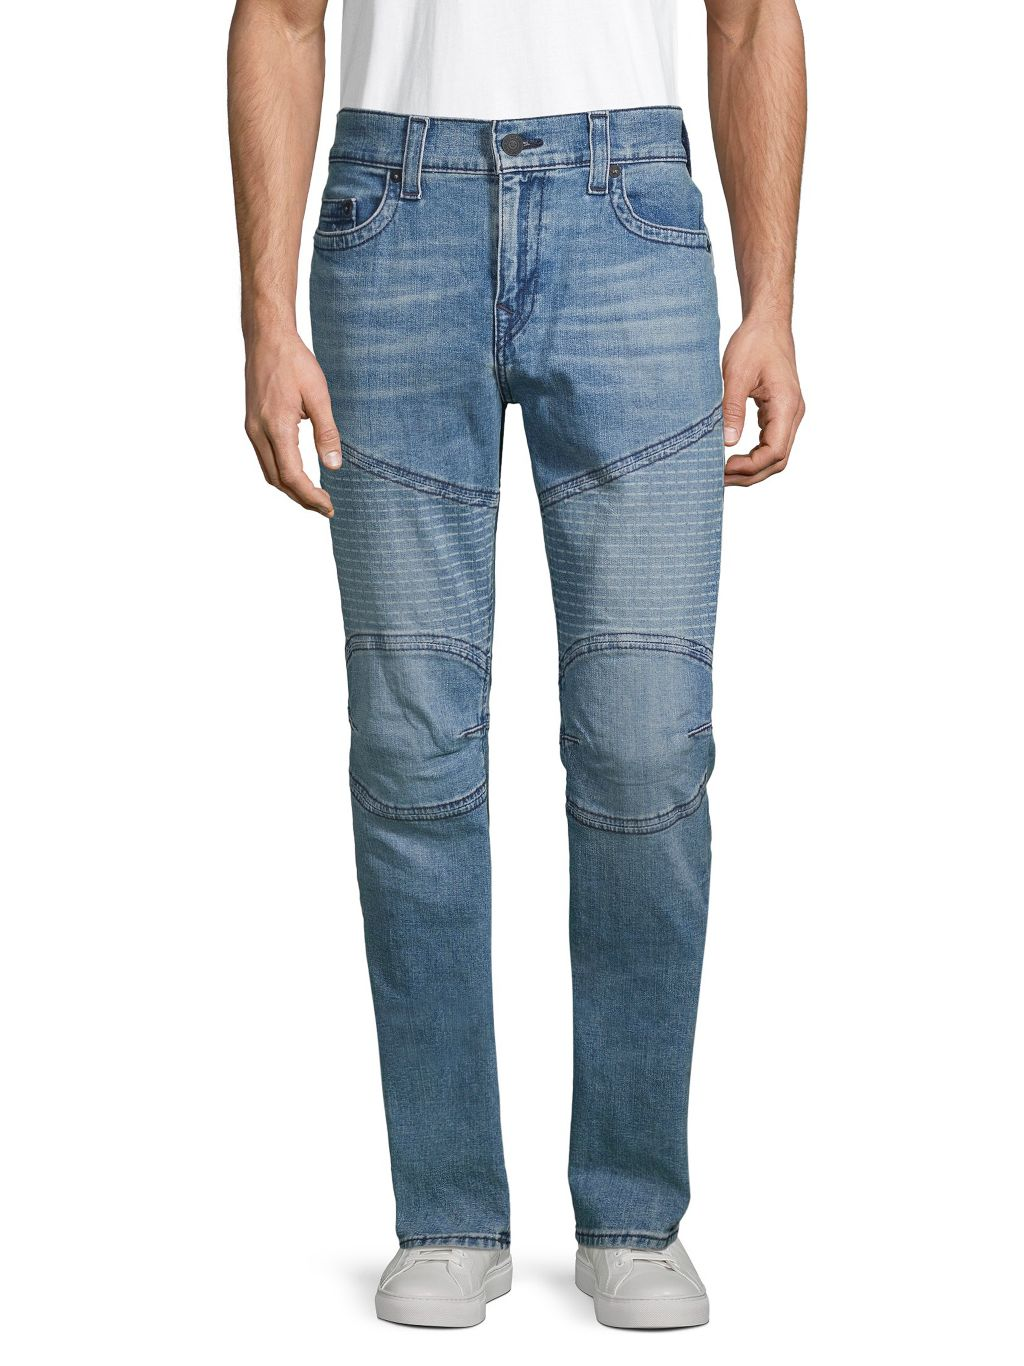 True Religion Rocco Moto Relaxed Skinny Jeans